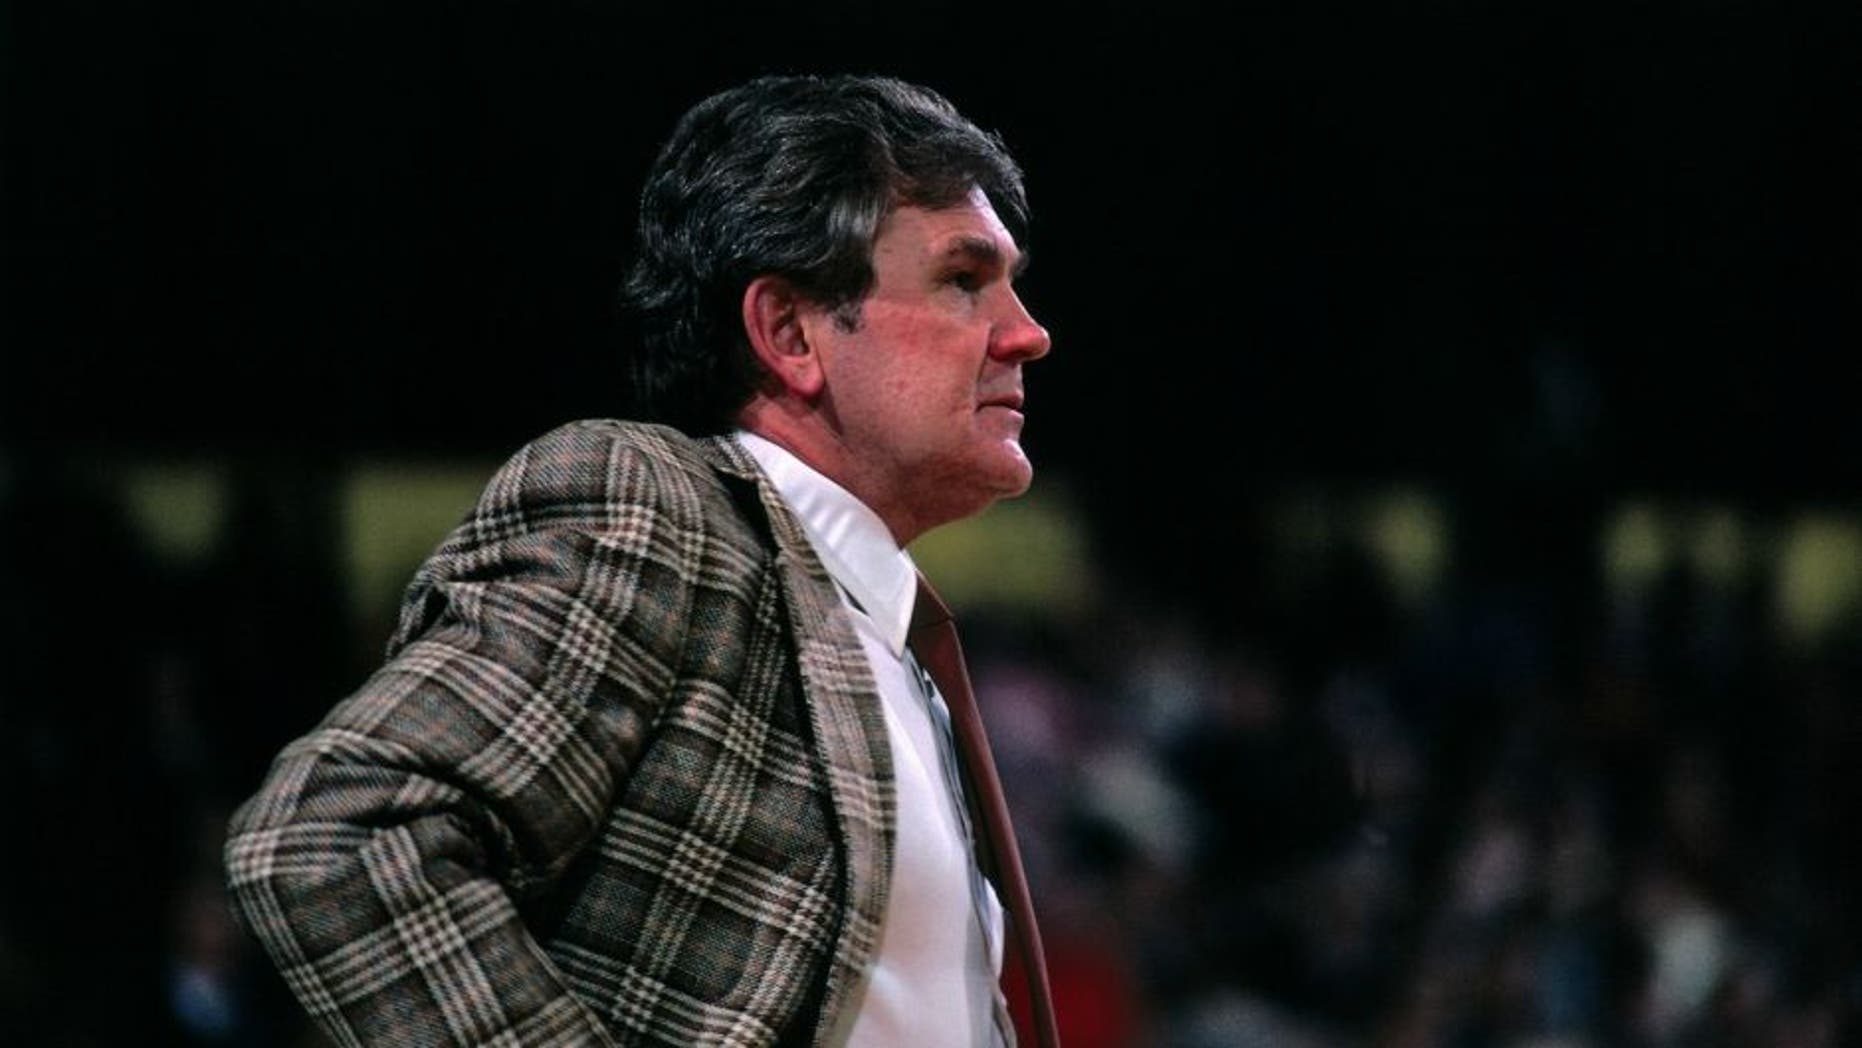 BOSTON - 1980: Head coach Bill Fitch of the Boston Celtics stands on the sideline during a game played in 1980 at the Boston Garden in Boston, Massachusetts. NOTE TO USER: User expressly acknowledges and agrees that, by downloading and or using this photograph, User is consenting to the terms and conditions of the Getty Images License Agreement. Mandatory Copyright Notice: Copyright 1980 NBAE (Photo by Dick Raphael/NBAE via Getty Images)